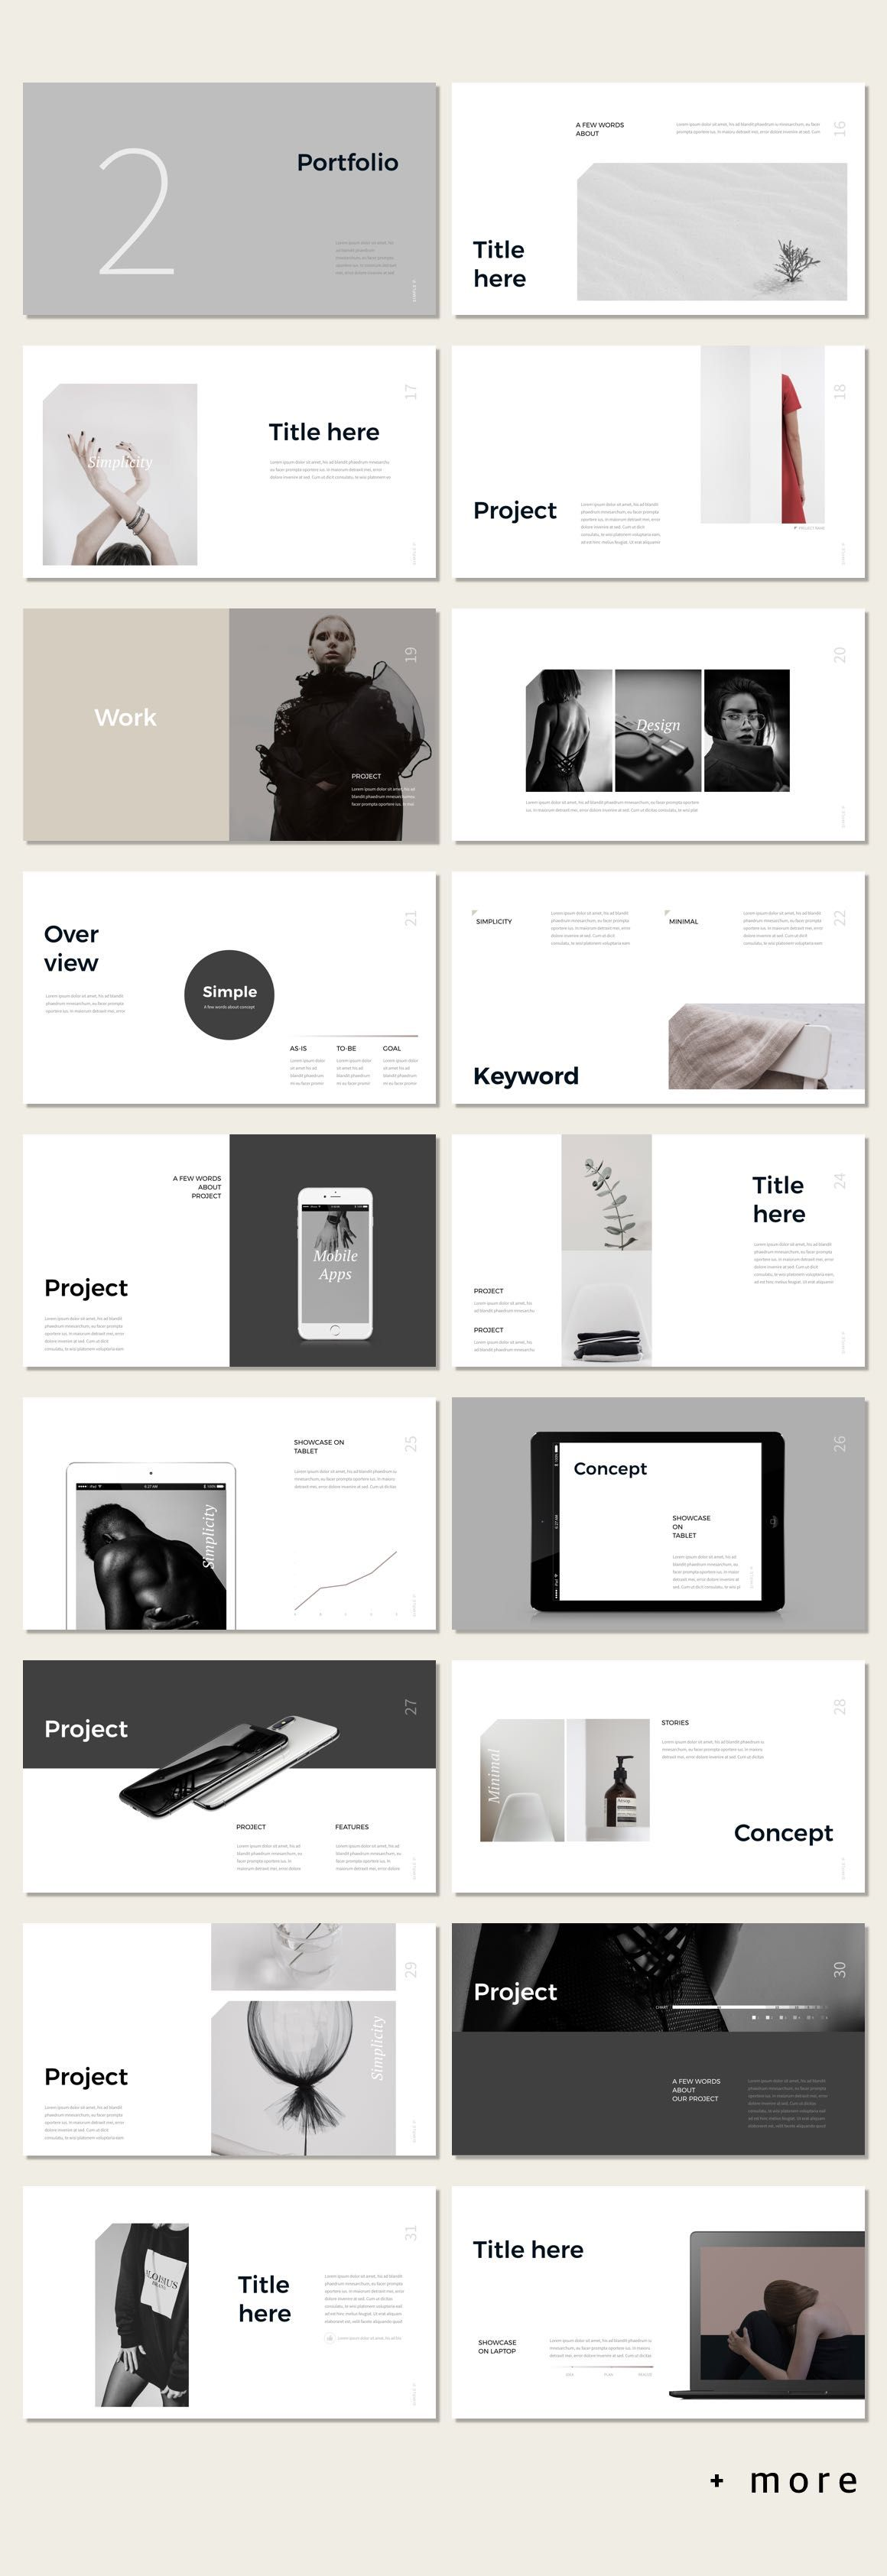 Simple P. PowerPoint Template | Layouts, Graphics and Design layouts